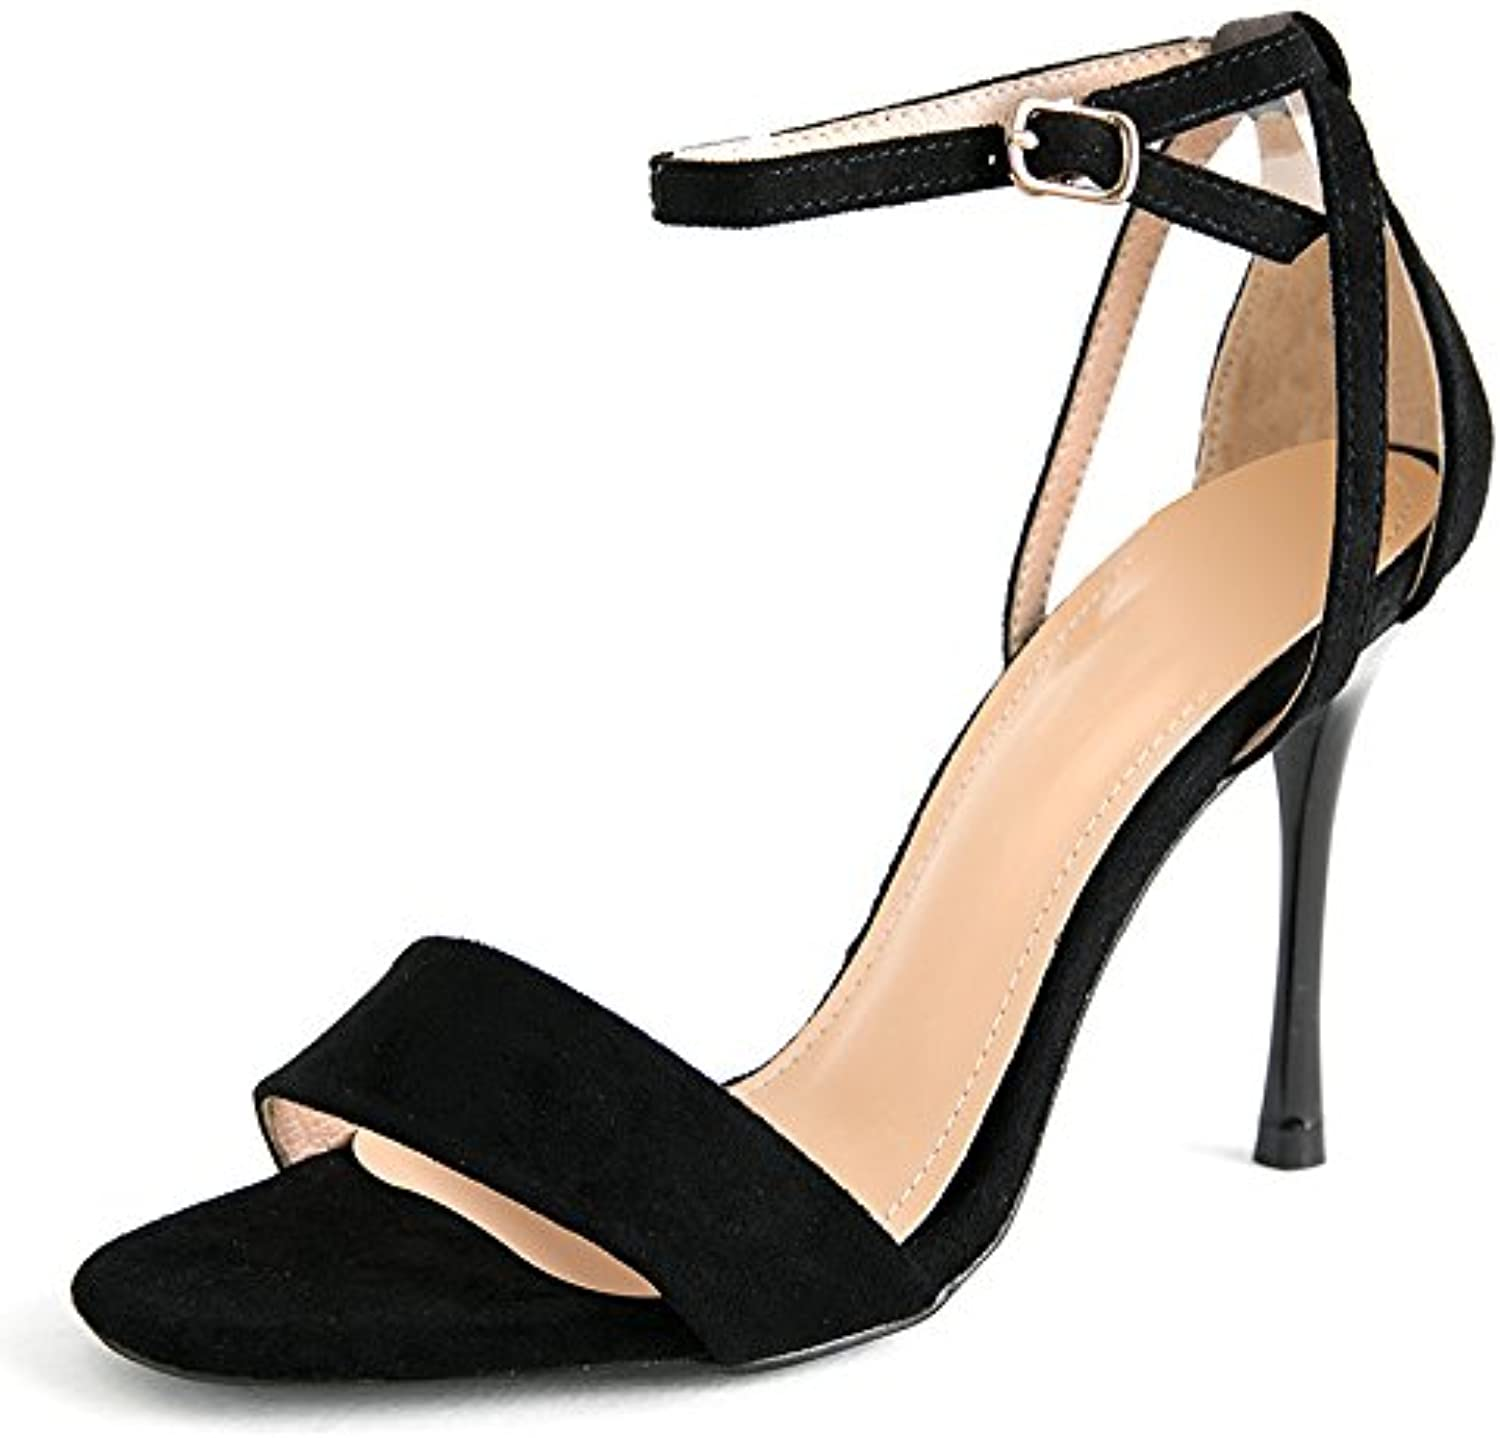 AGECC The Sandals Are Hollow And And And Thin, And The Cat Wears The nero scarpe And The High-Heeled scarpe,Thirty-Six,... | The Queen Of Quality  | Uomo/Donna Scarpa  d2b912